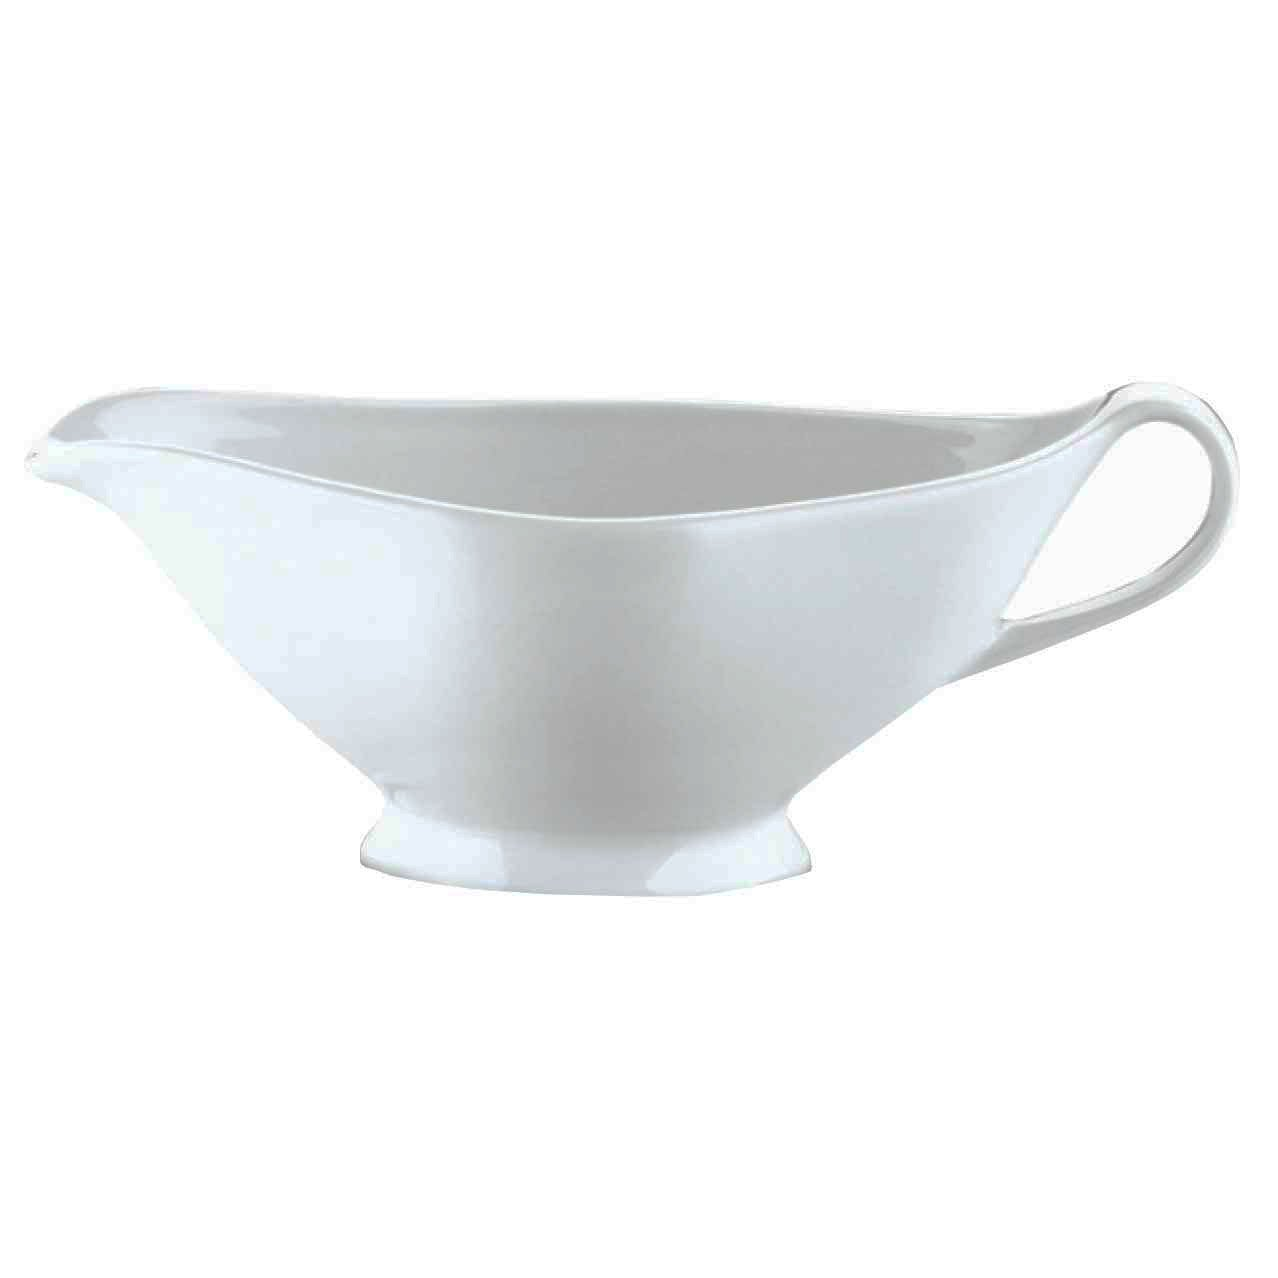 Pillivuyt, French Porcelain Open 8 Inch Sauce Boat/Gravy Boat, 10 ounces, Microwaveable, Oven to Table by Pillivuyt France (Image #1)